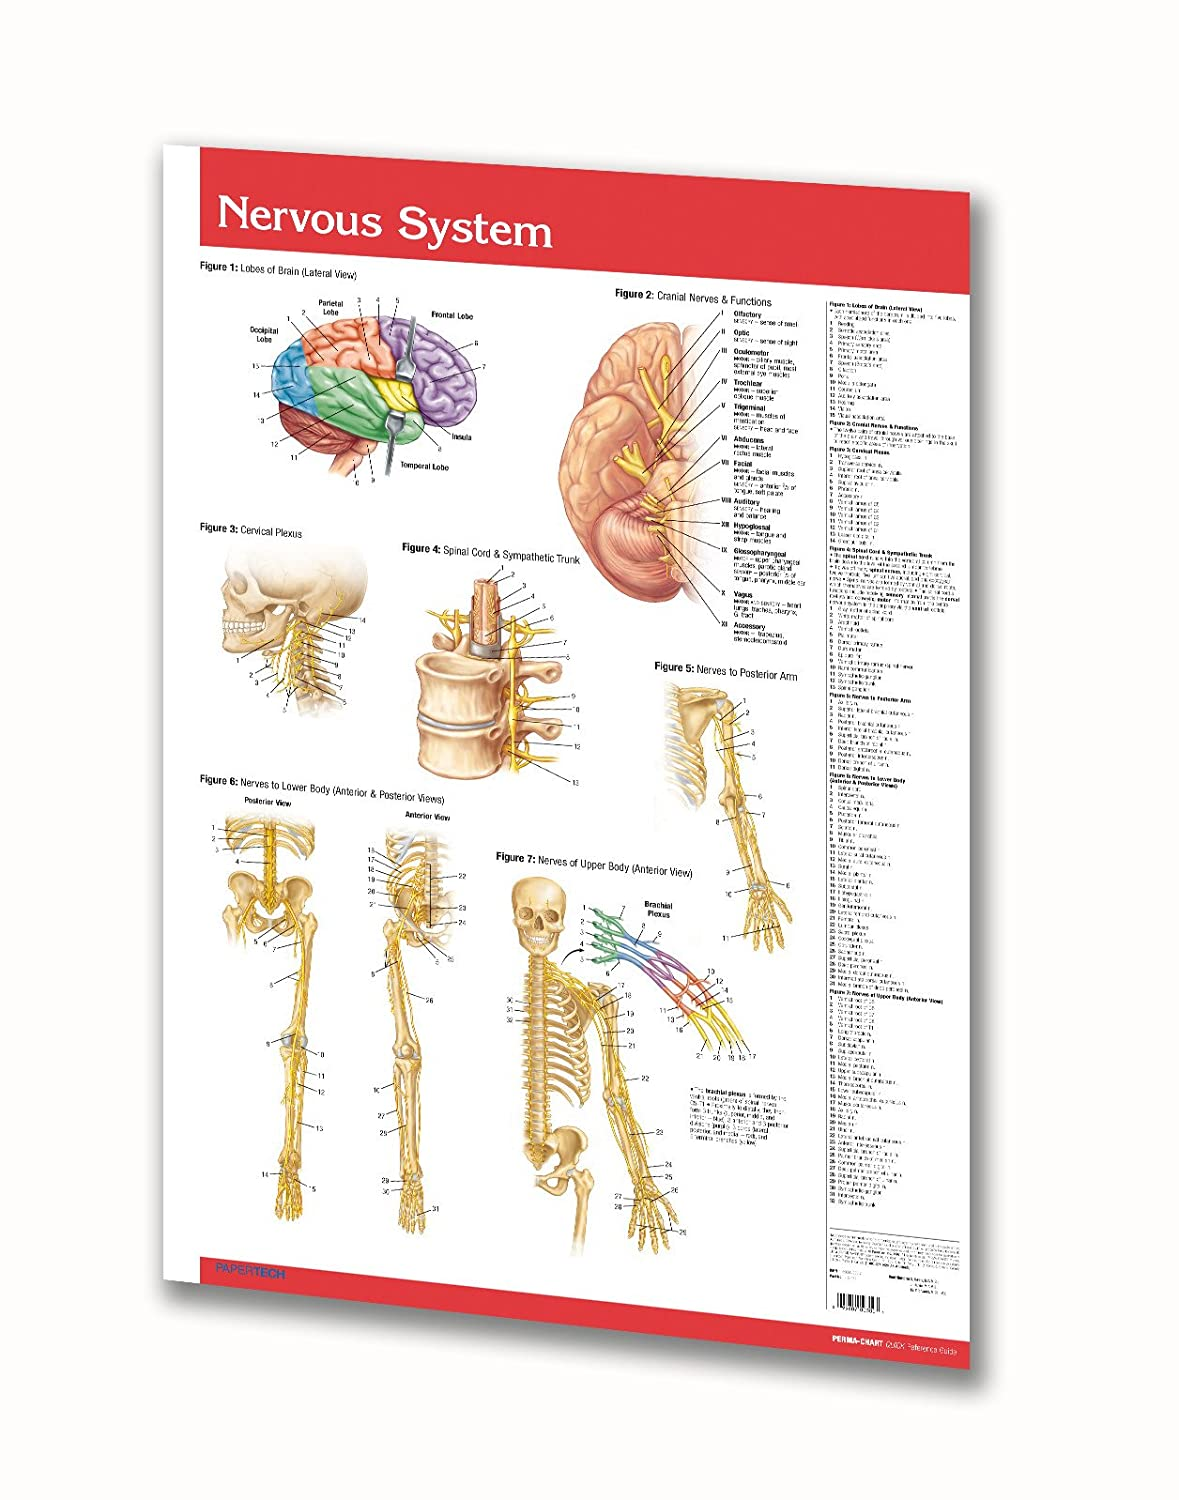 Human Nervous System and Circulatory System Anatomy Wall Poster - 24' x 36' Laminated Poster - Medical Quick Reference Guide Permacharts.com